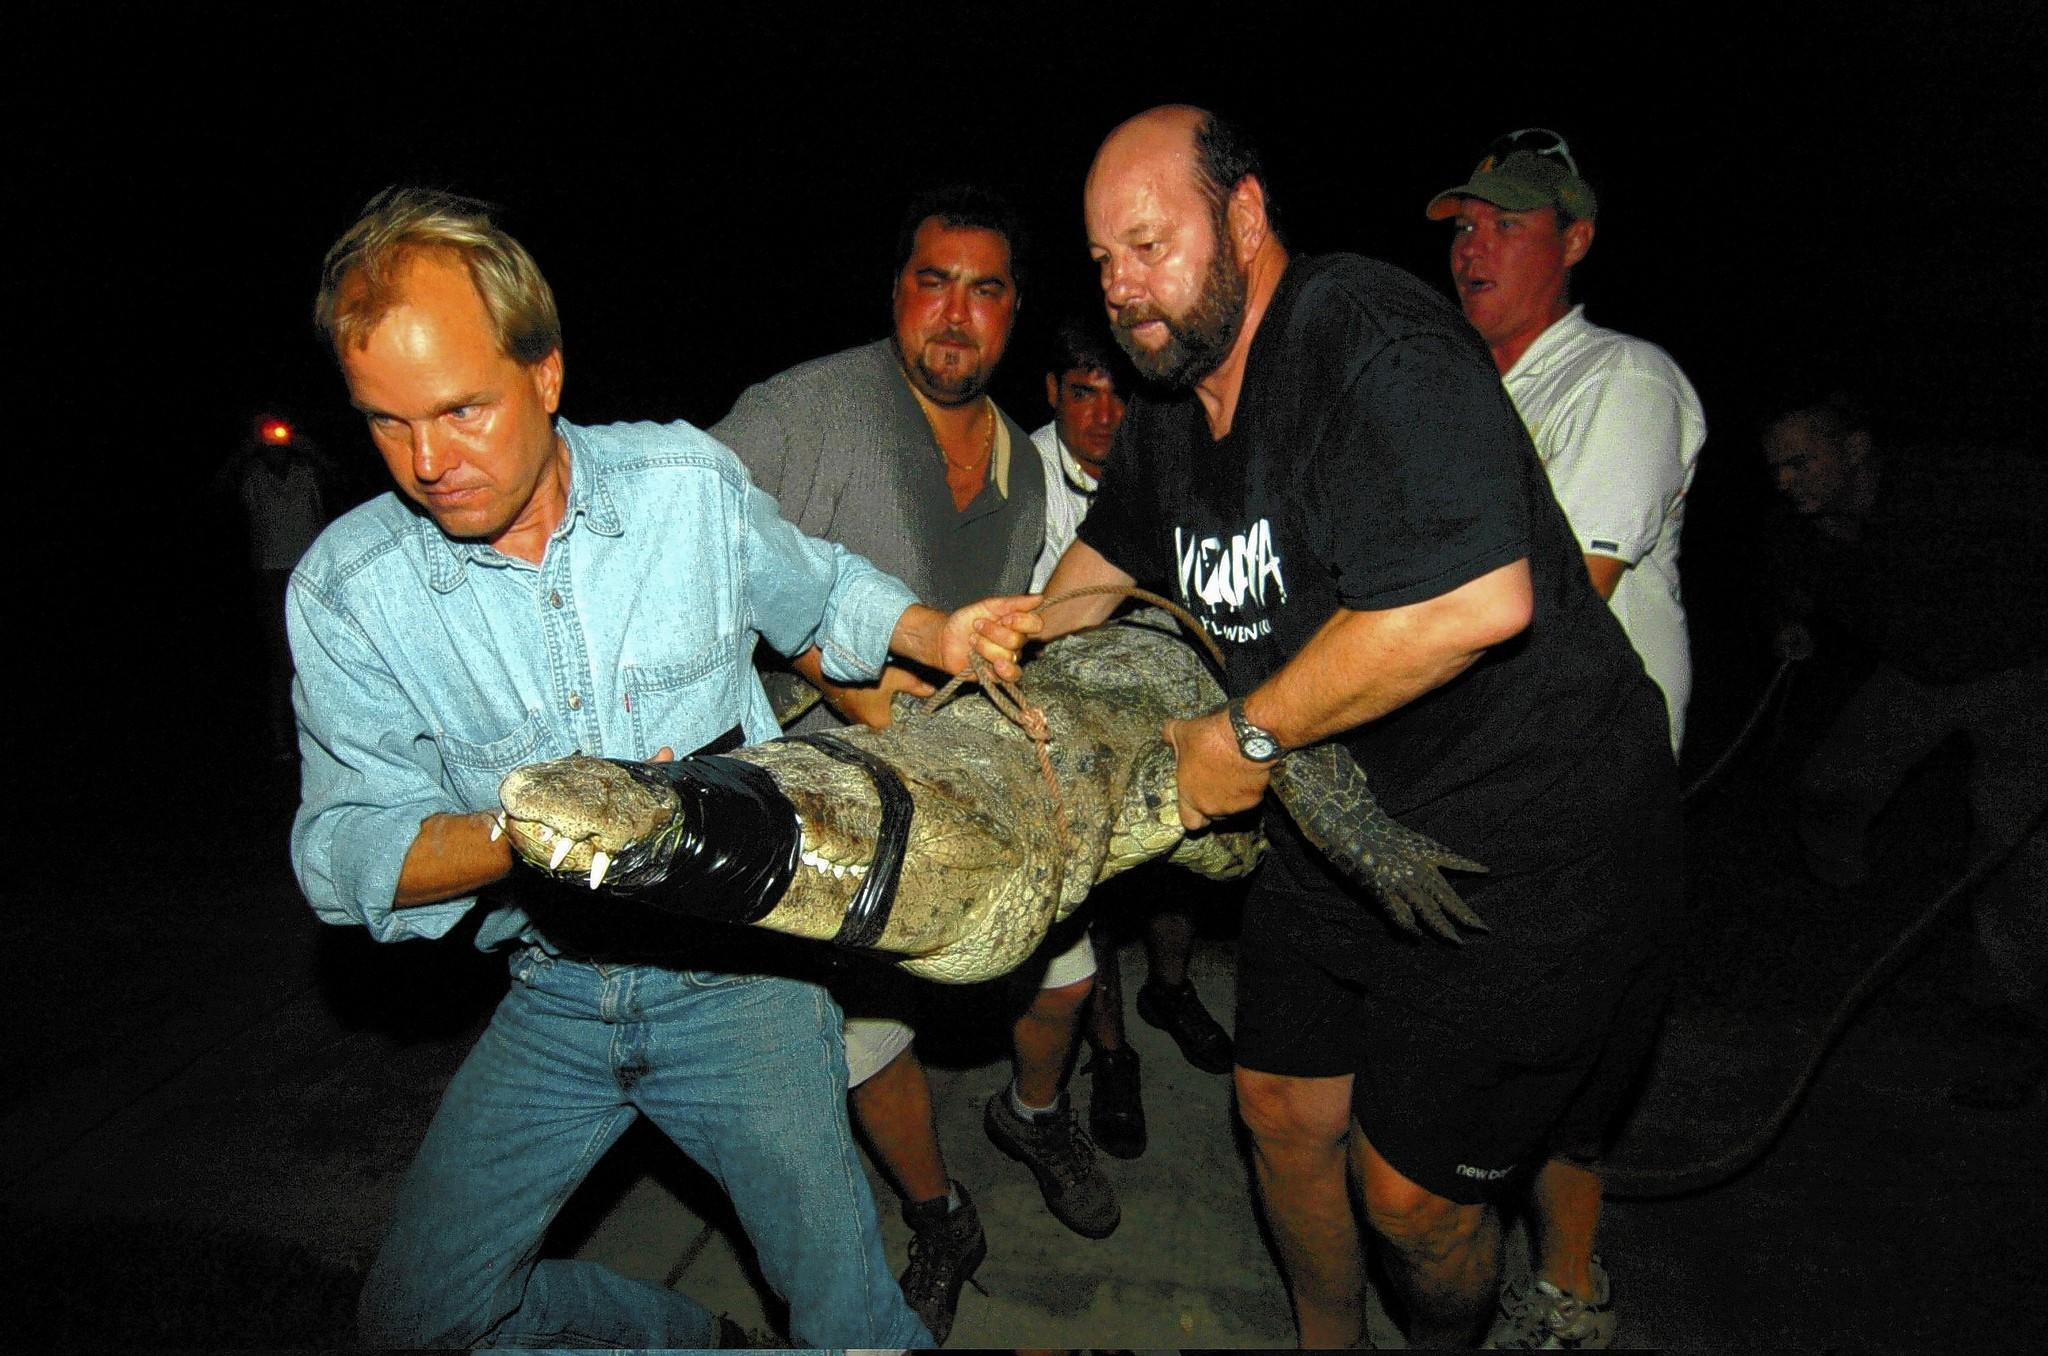 An 11-foot crocodile found in South Miami is being relocated in this 2006 photo. Crocodile numbers in Florida have risen from a low of 200 or so in the 1970s to about 2,000 today.